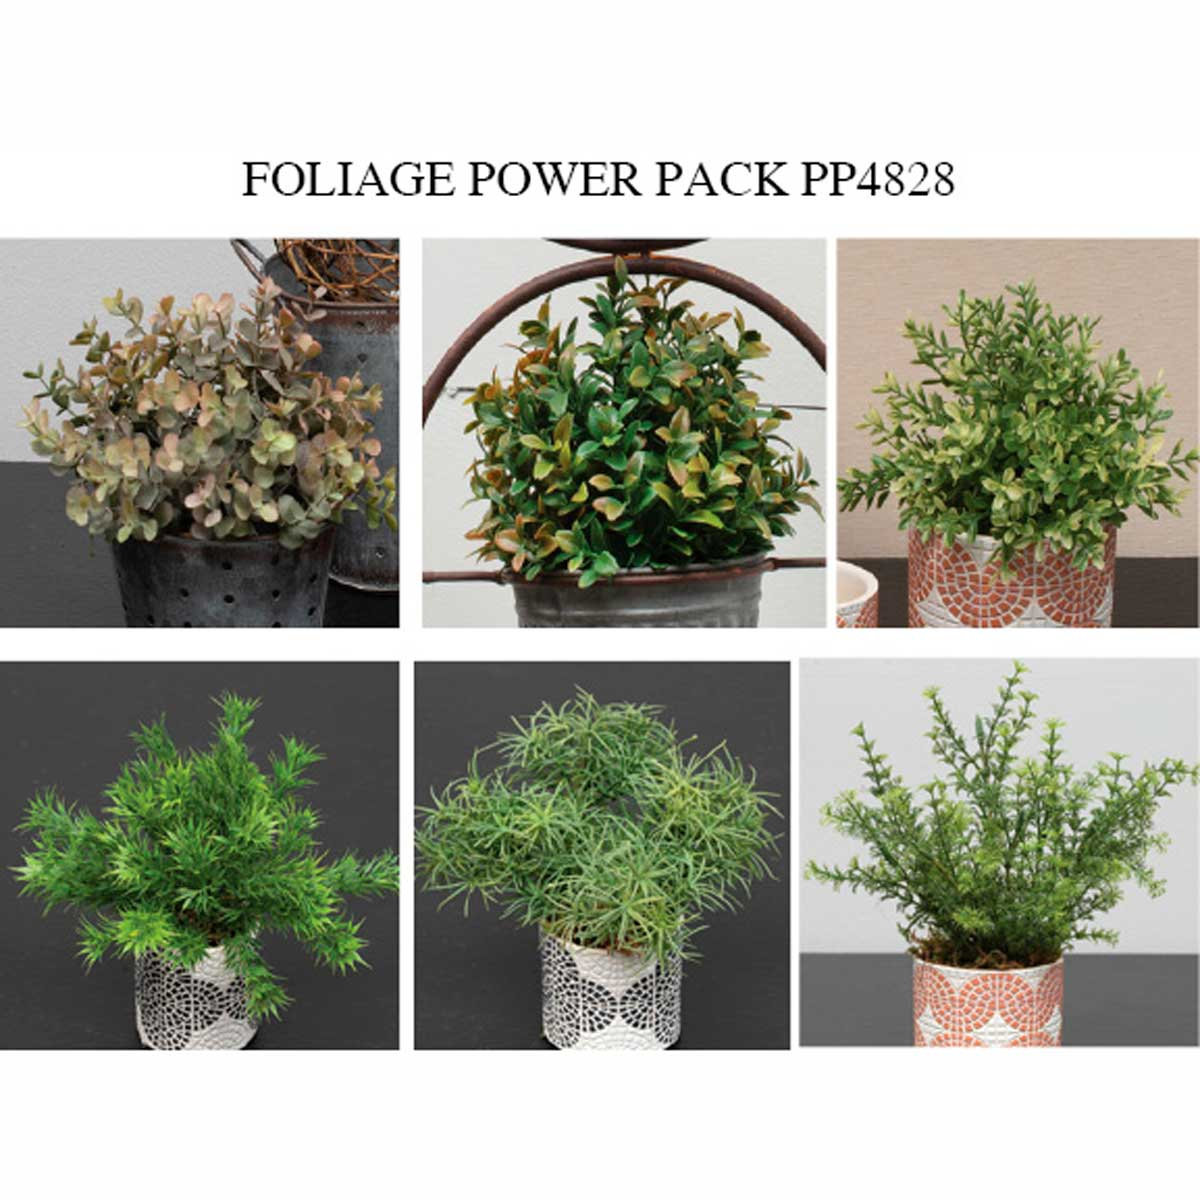 FOLIAGE POWER PACK 30 UNITS